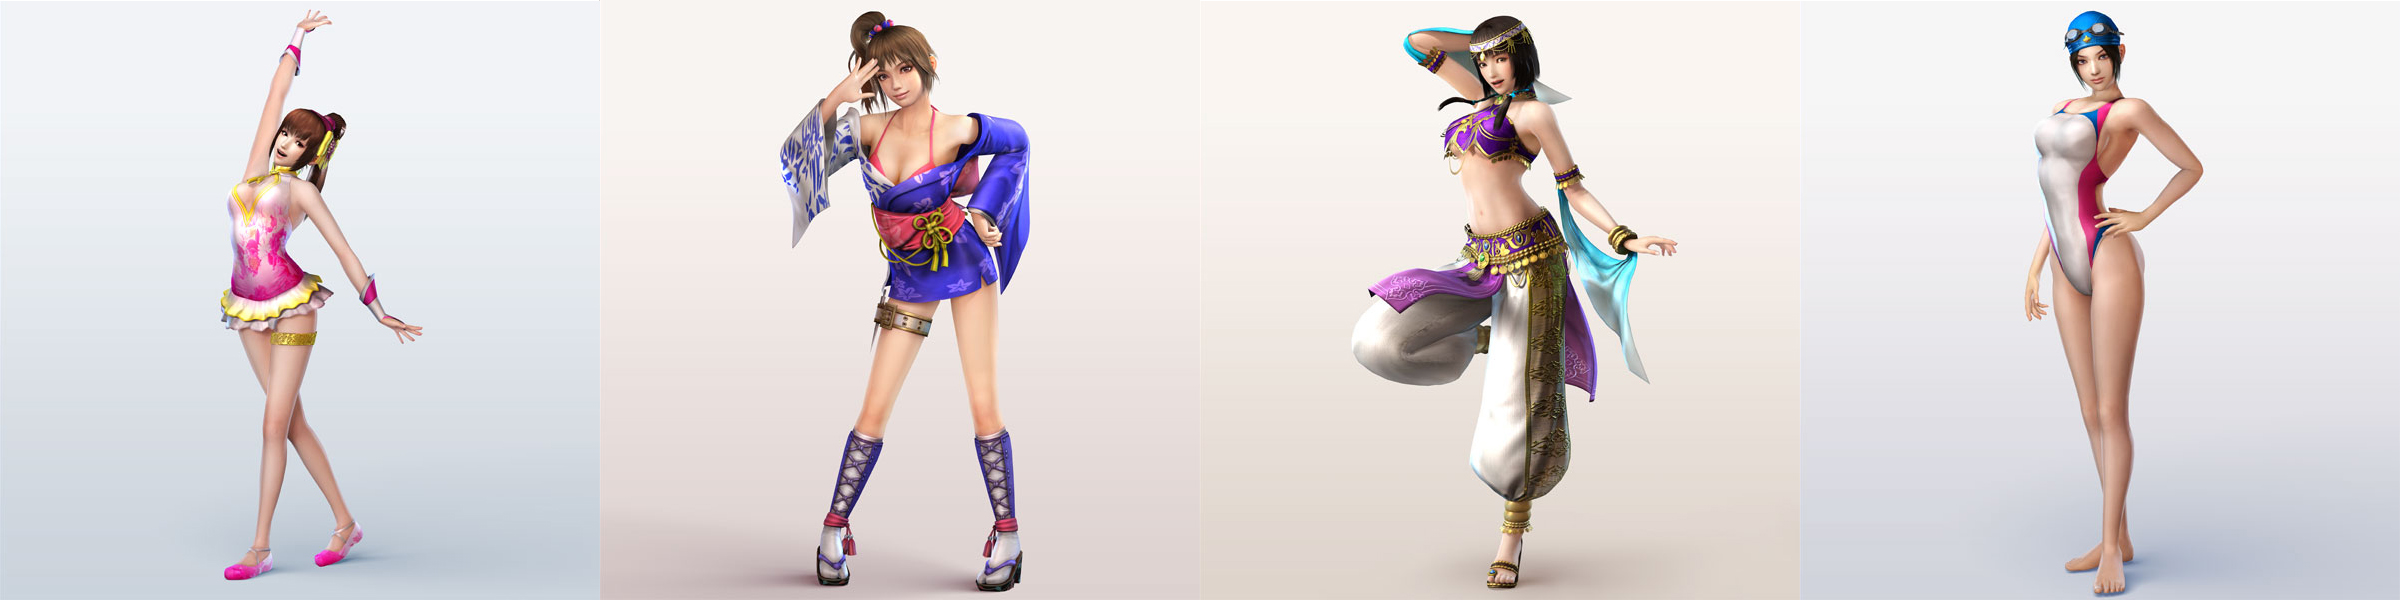 Warriors orochi sexiest female nude pic